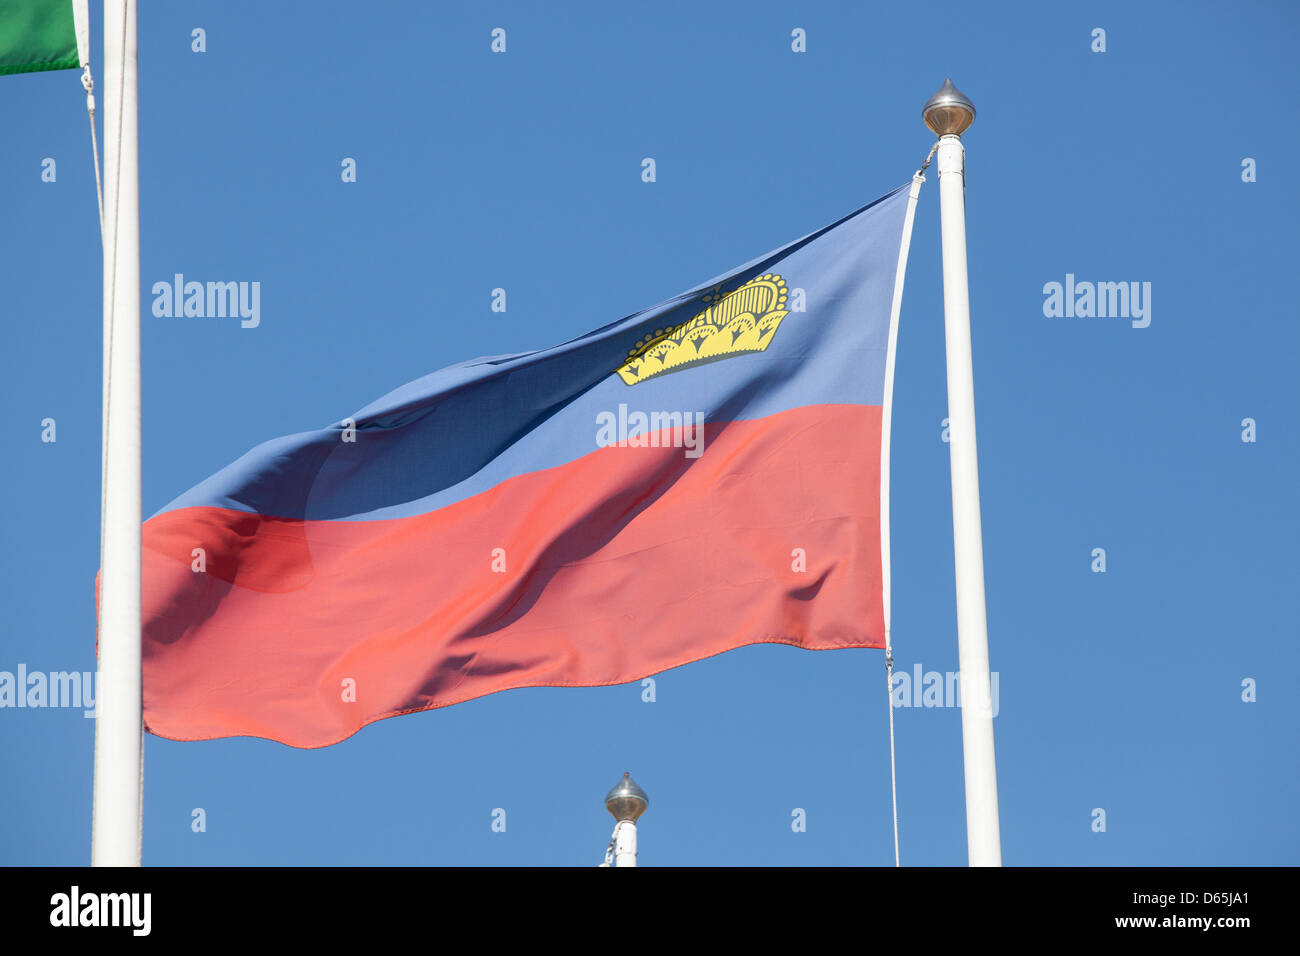 The flag of Liechtenstein fluttering in the breeze. - Stock Image